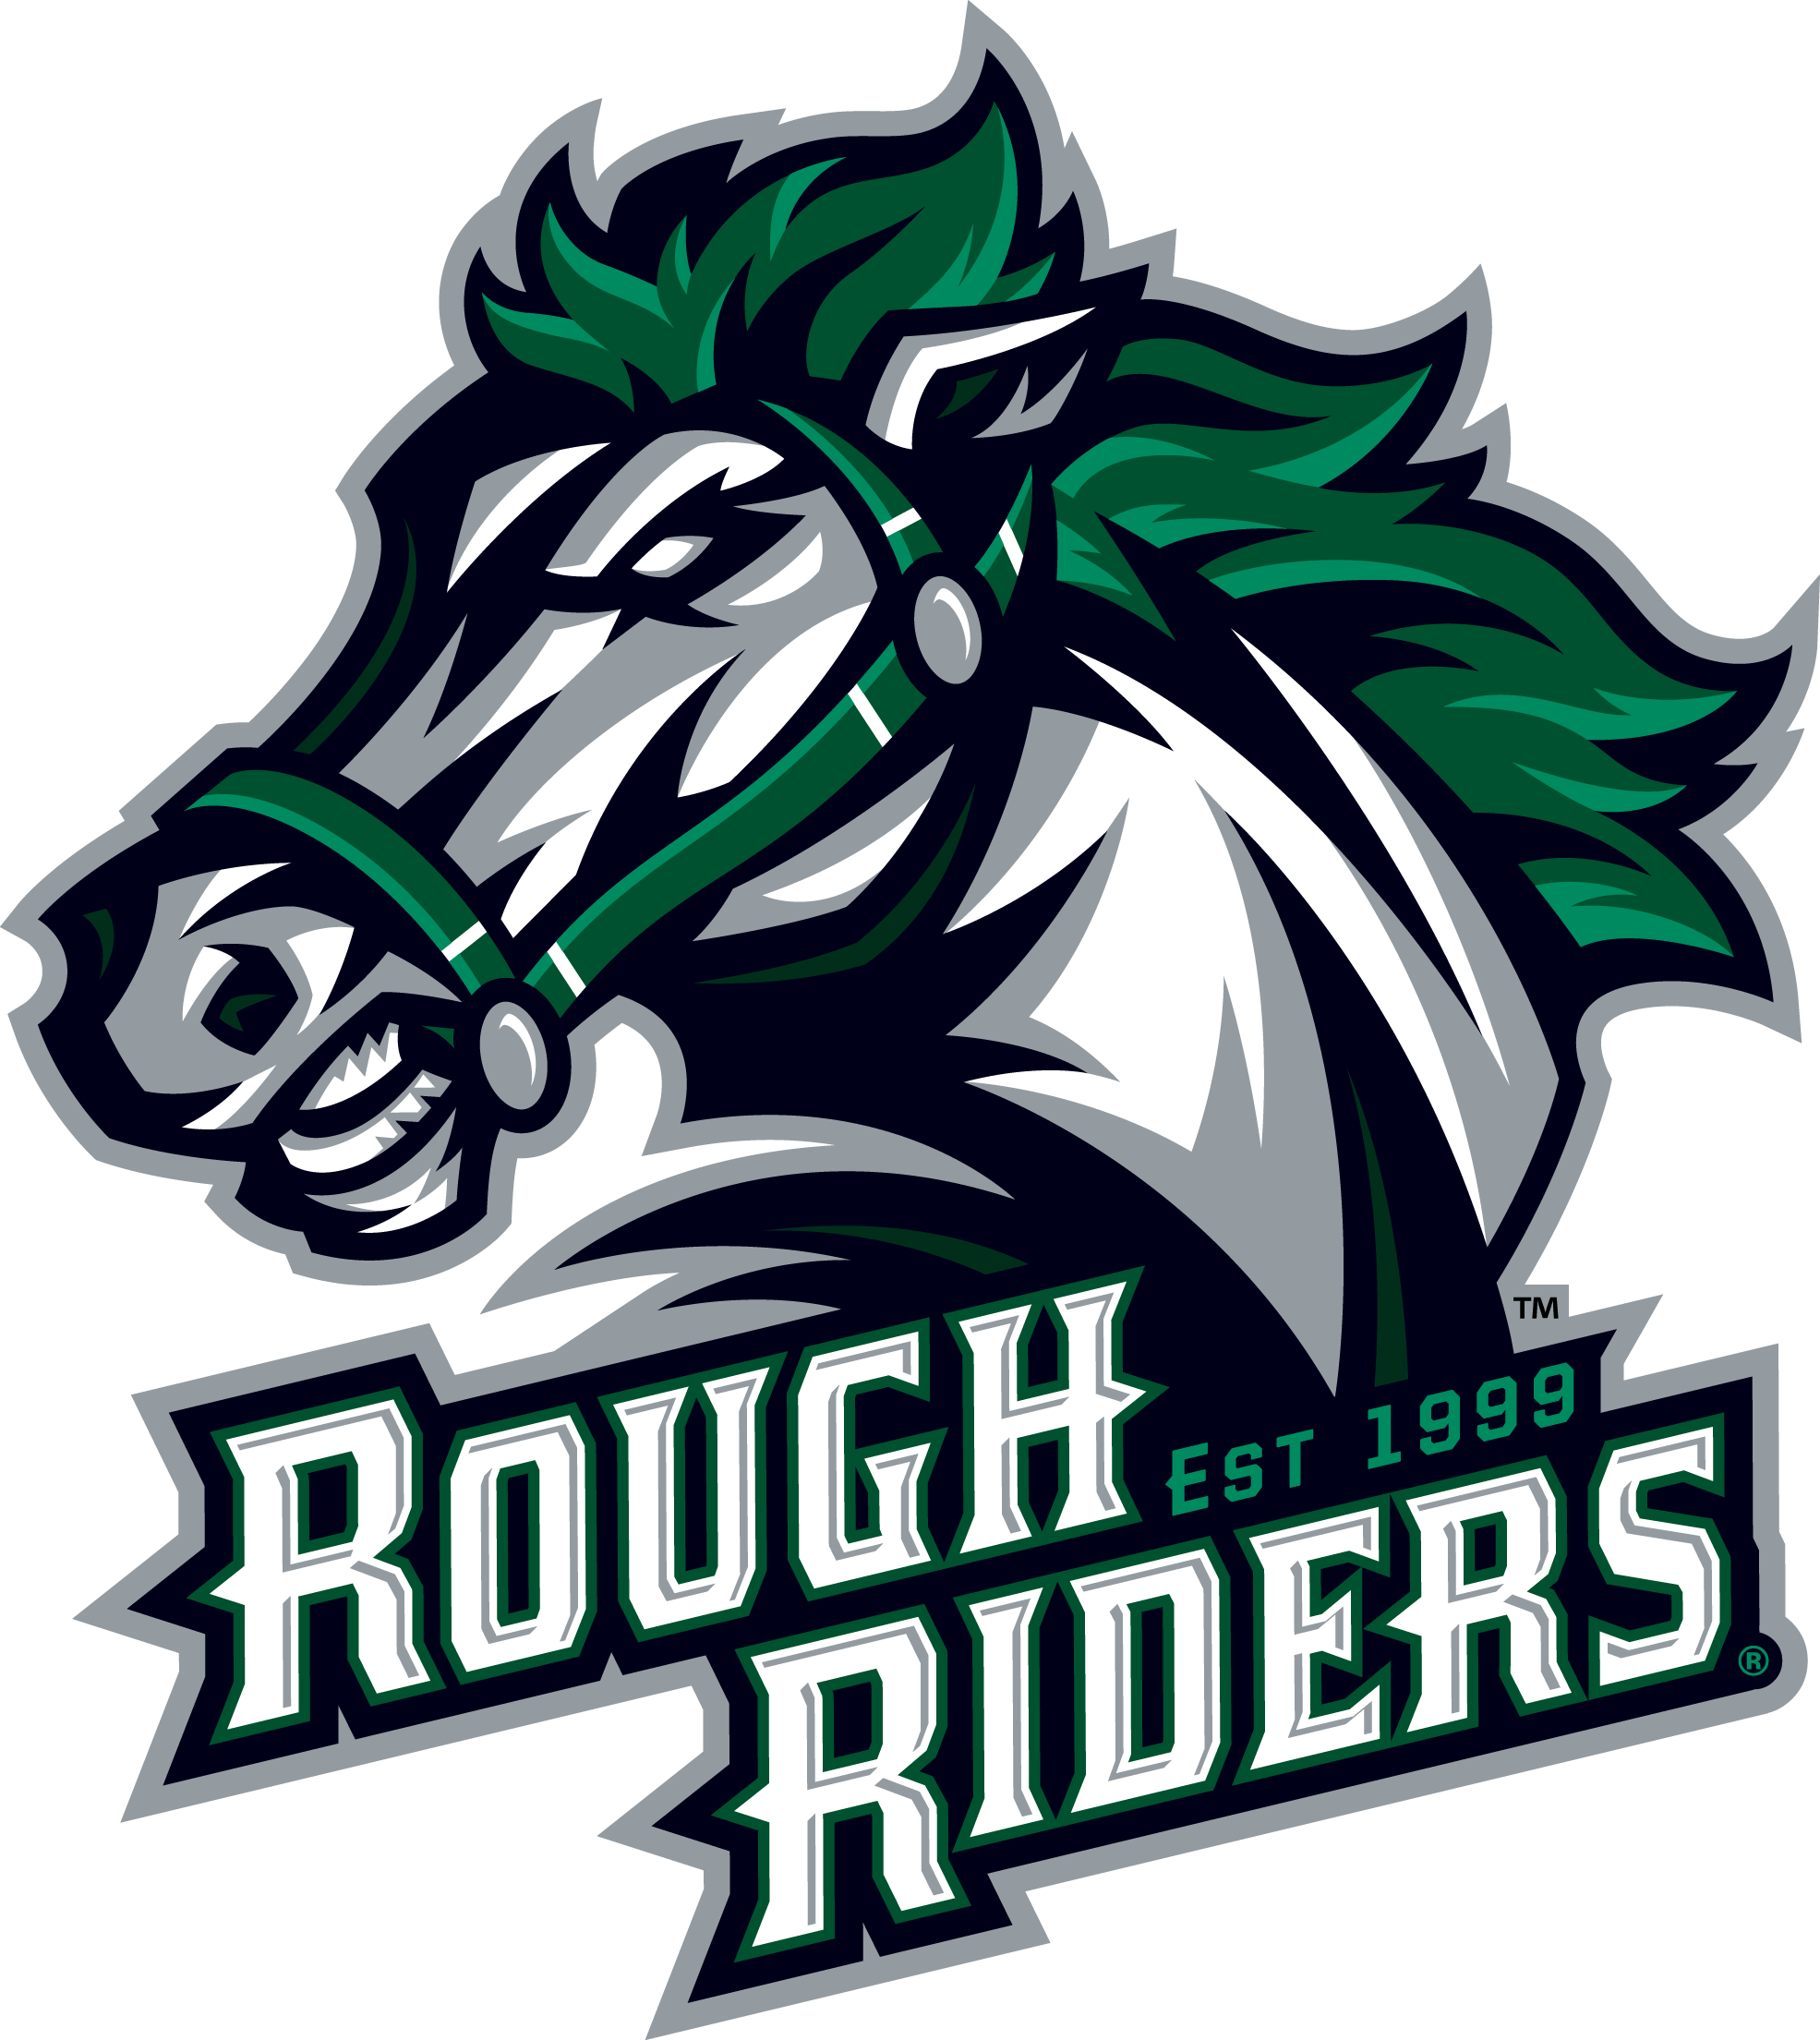 Rr angry horse logo